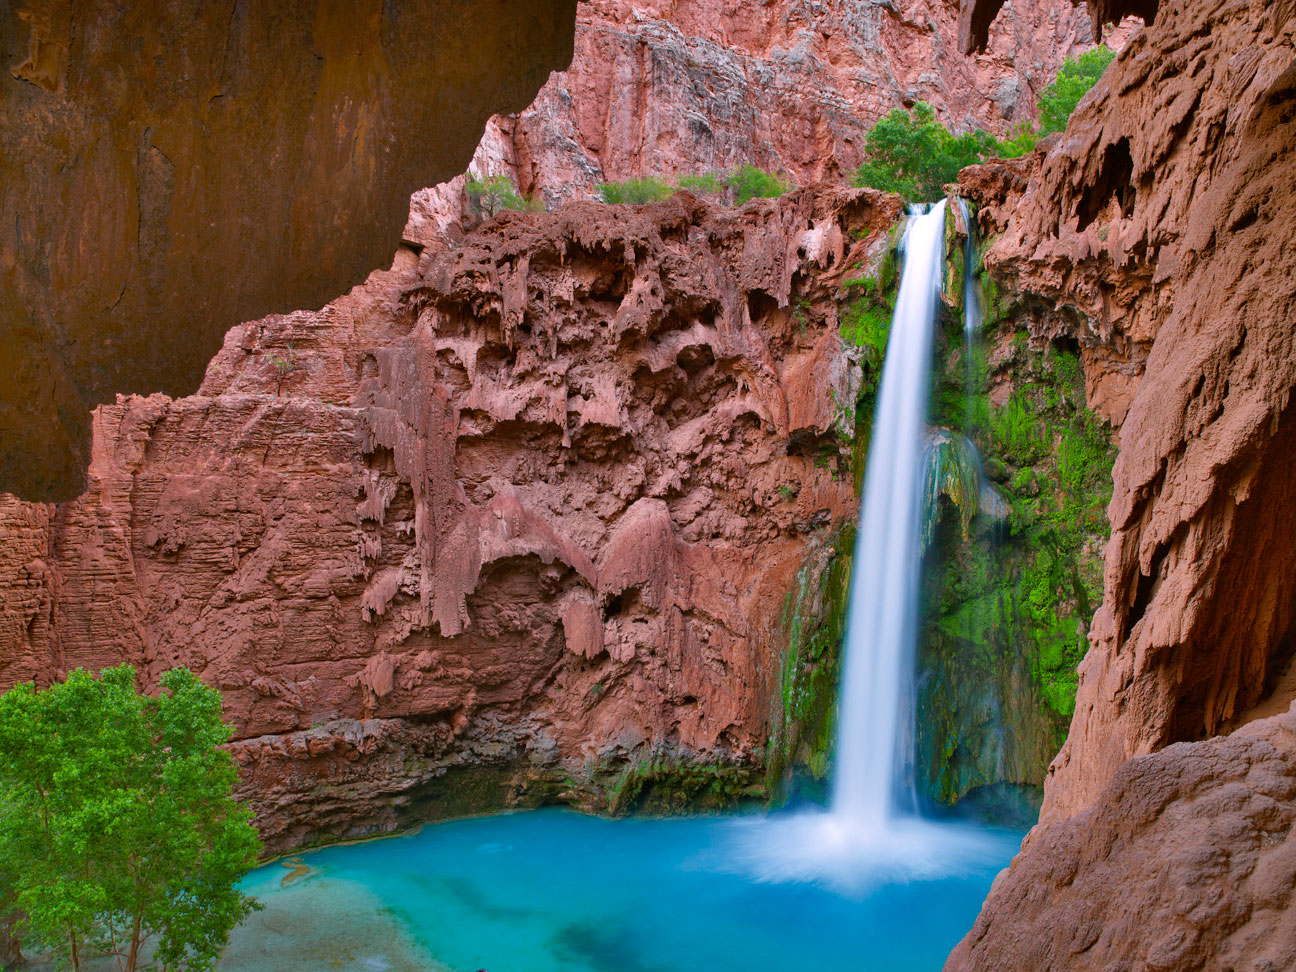 OASIS IN THE CANYON